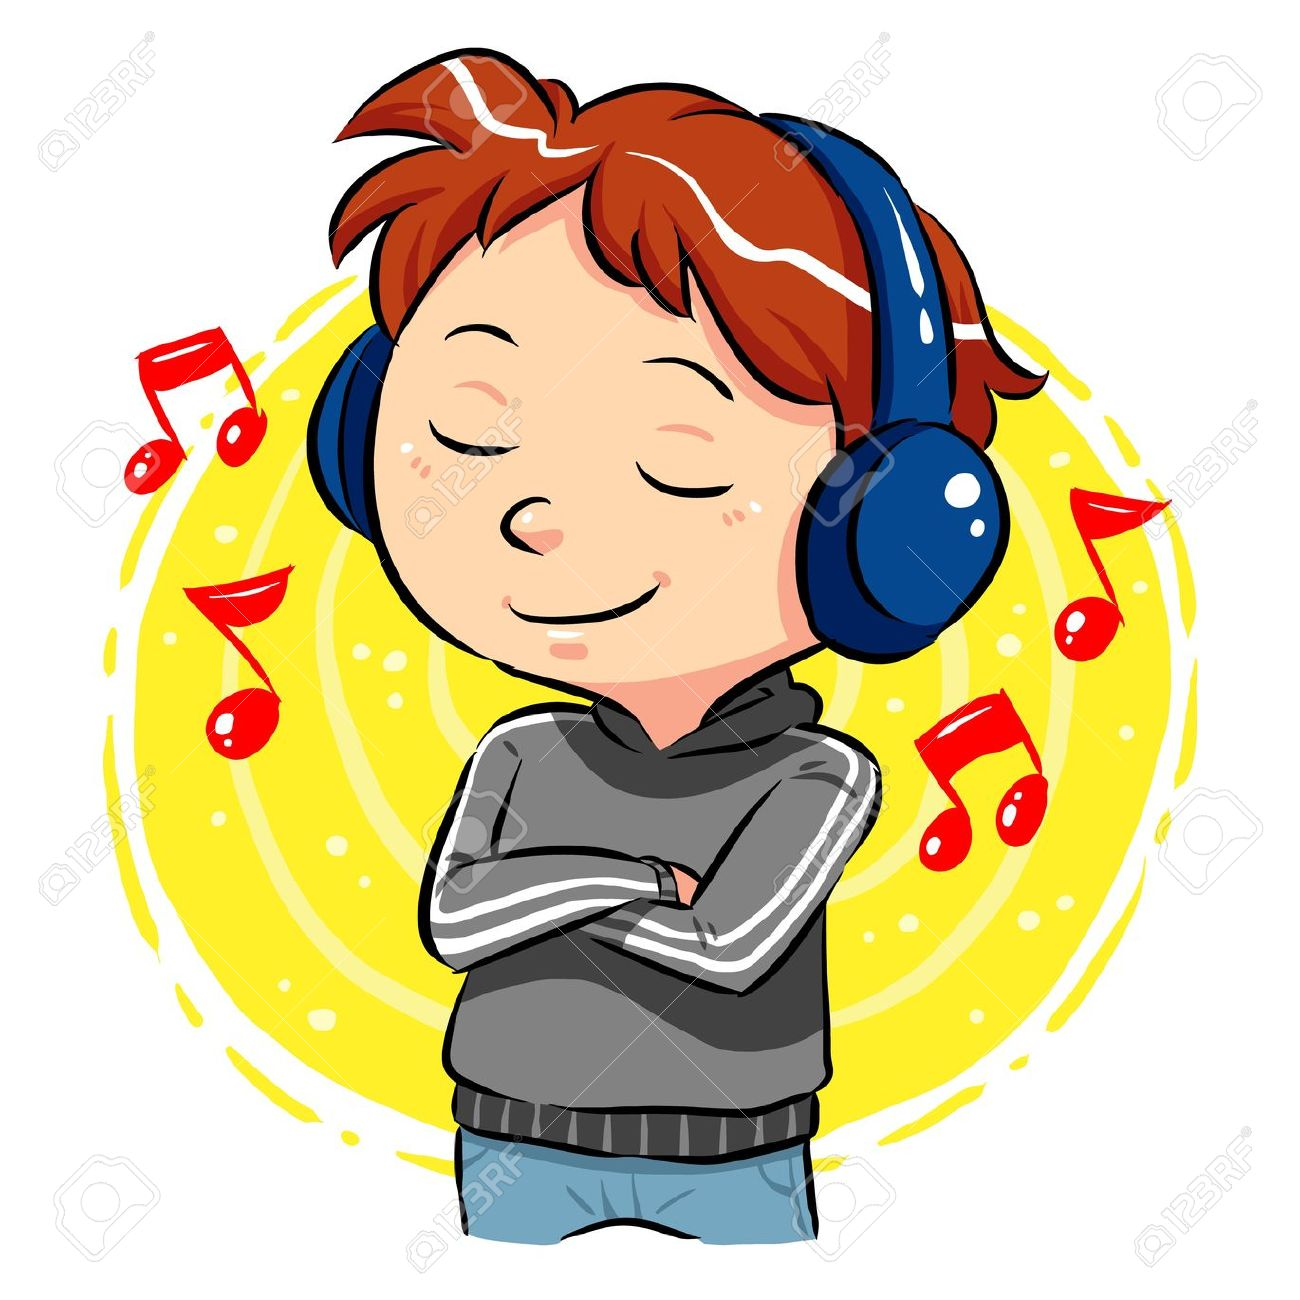 http://previews.123rf.com/images/mikailain/mikailain1306/mikailain130600008/20360741-Listening-To-Music-A-boy-listening-to-music-with-headphones-on-his-head-Stock-Vector.jpg